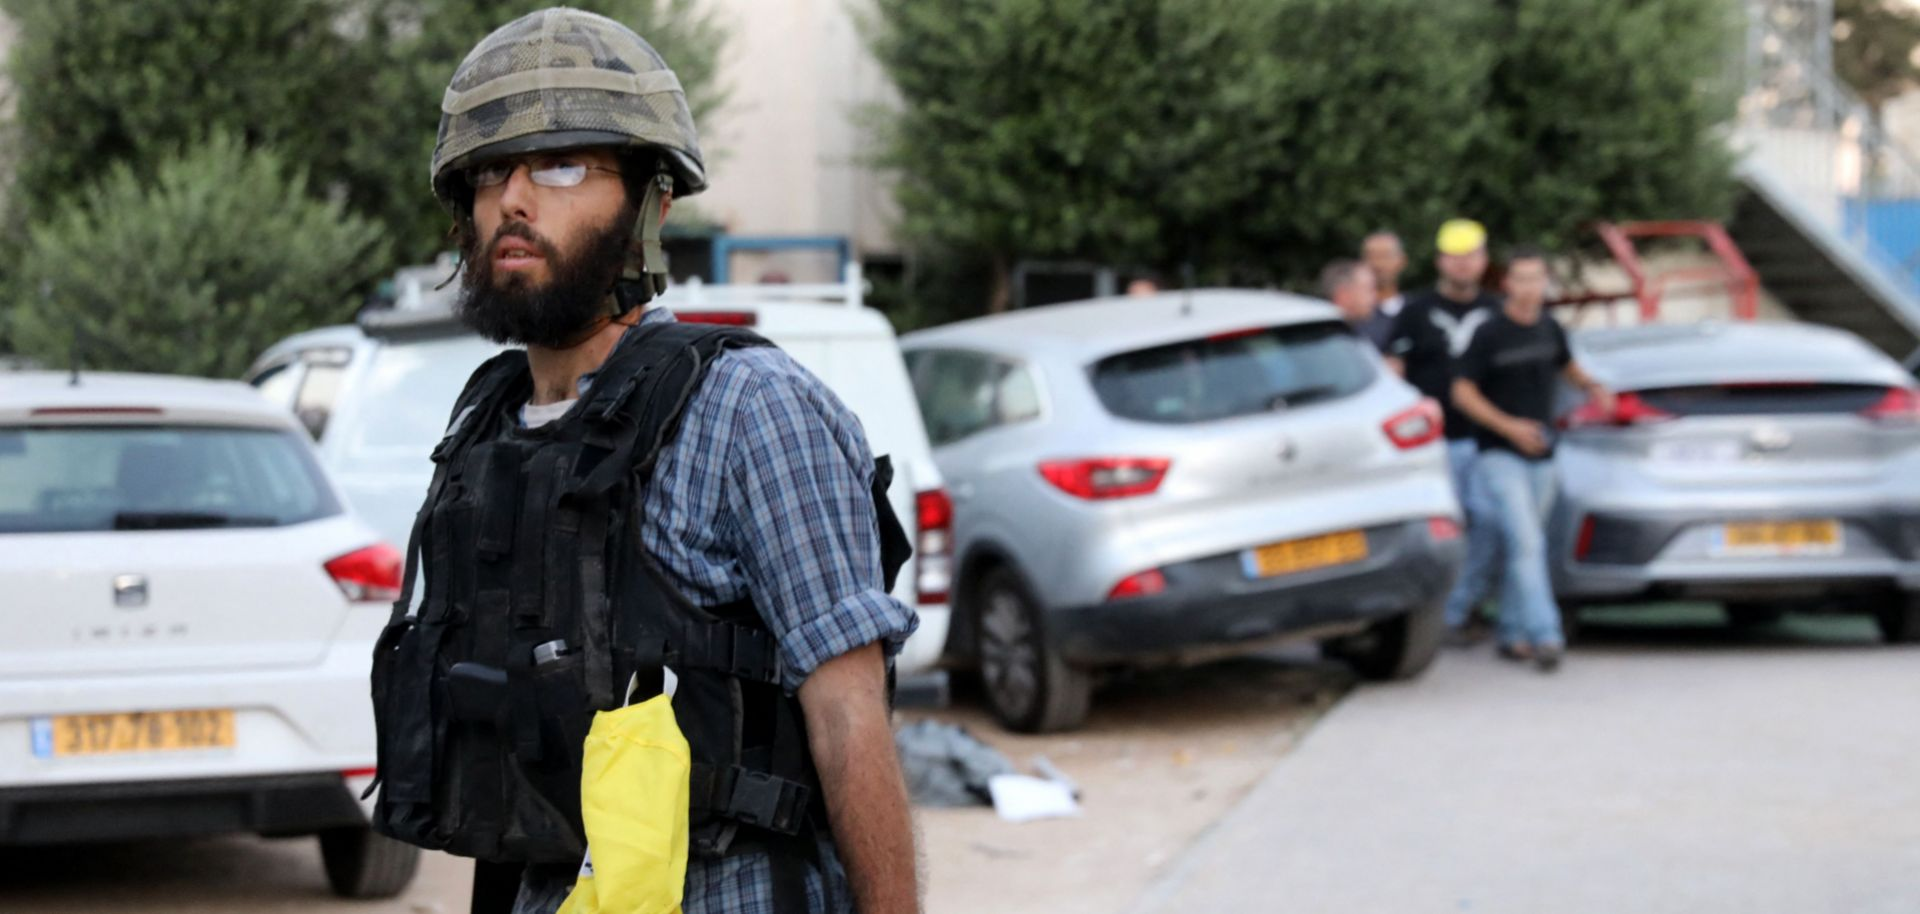 An Israeli far-right extremist walks in the street following clashes in the mixed Arab-Jewish city of Lod on May 13, 2021.